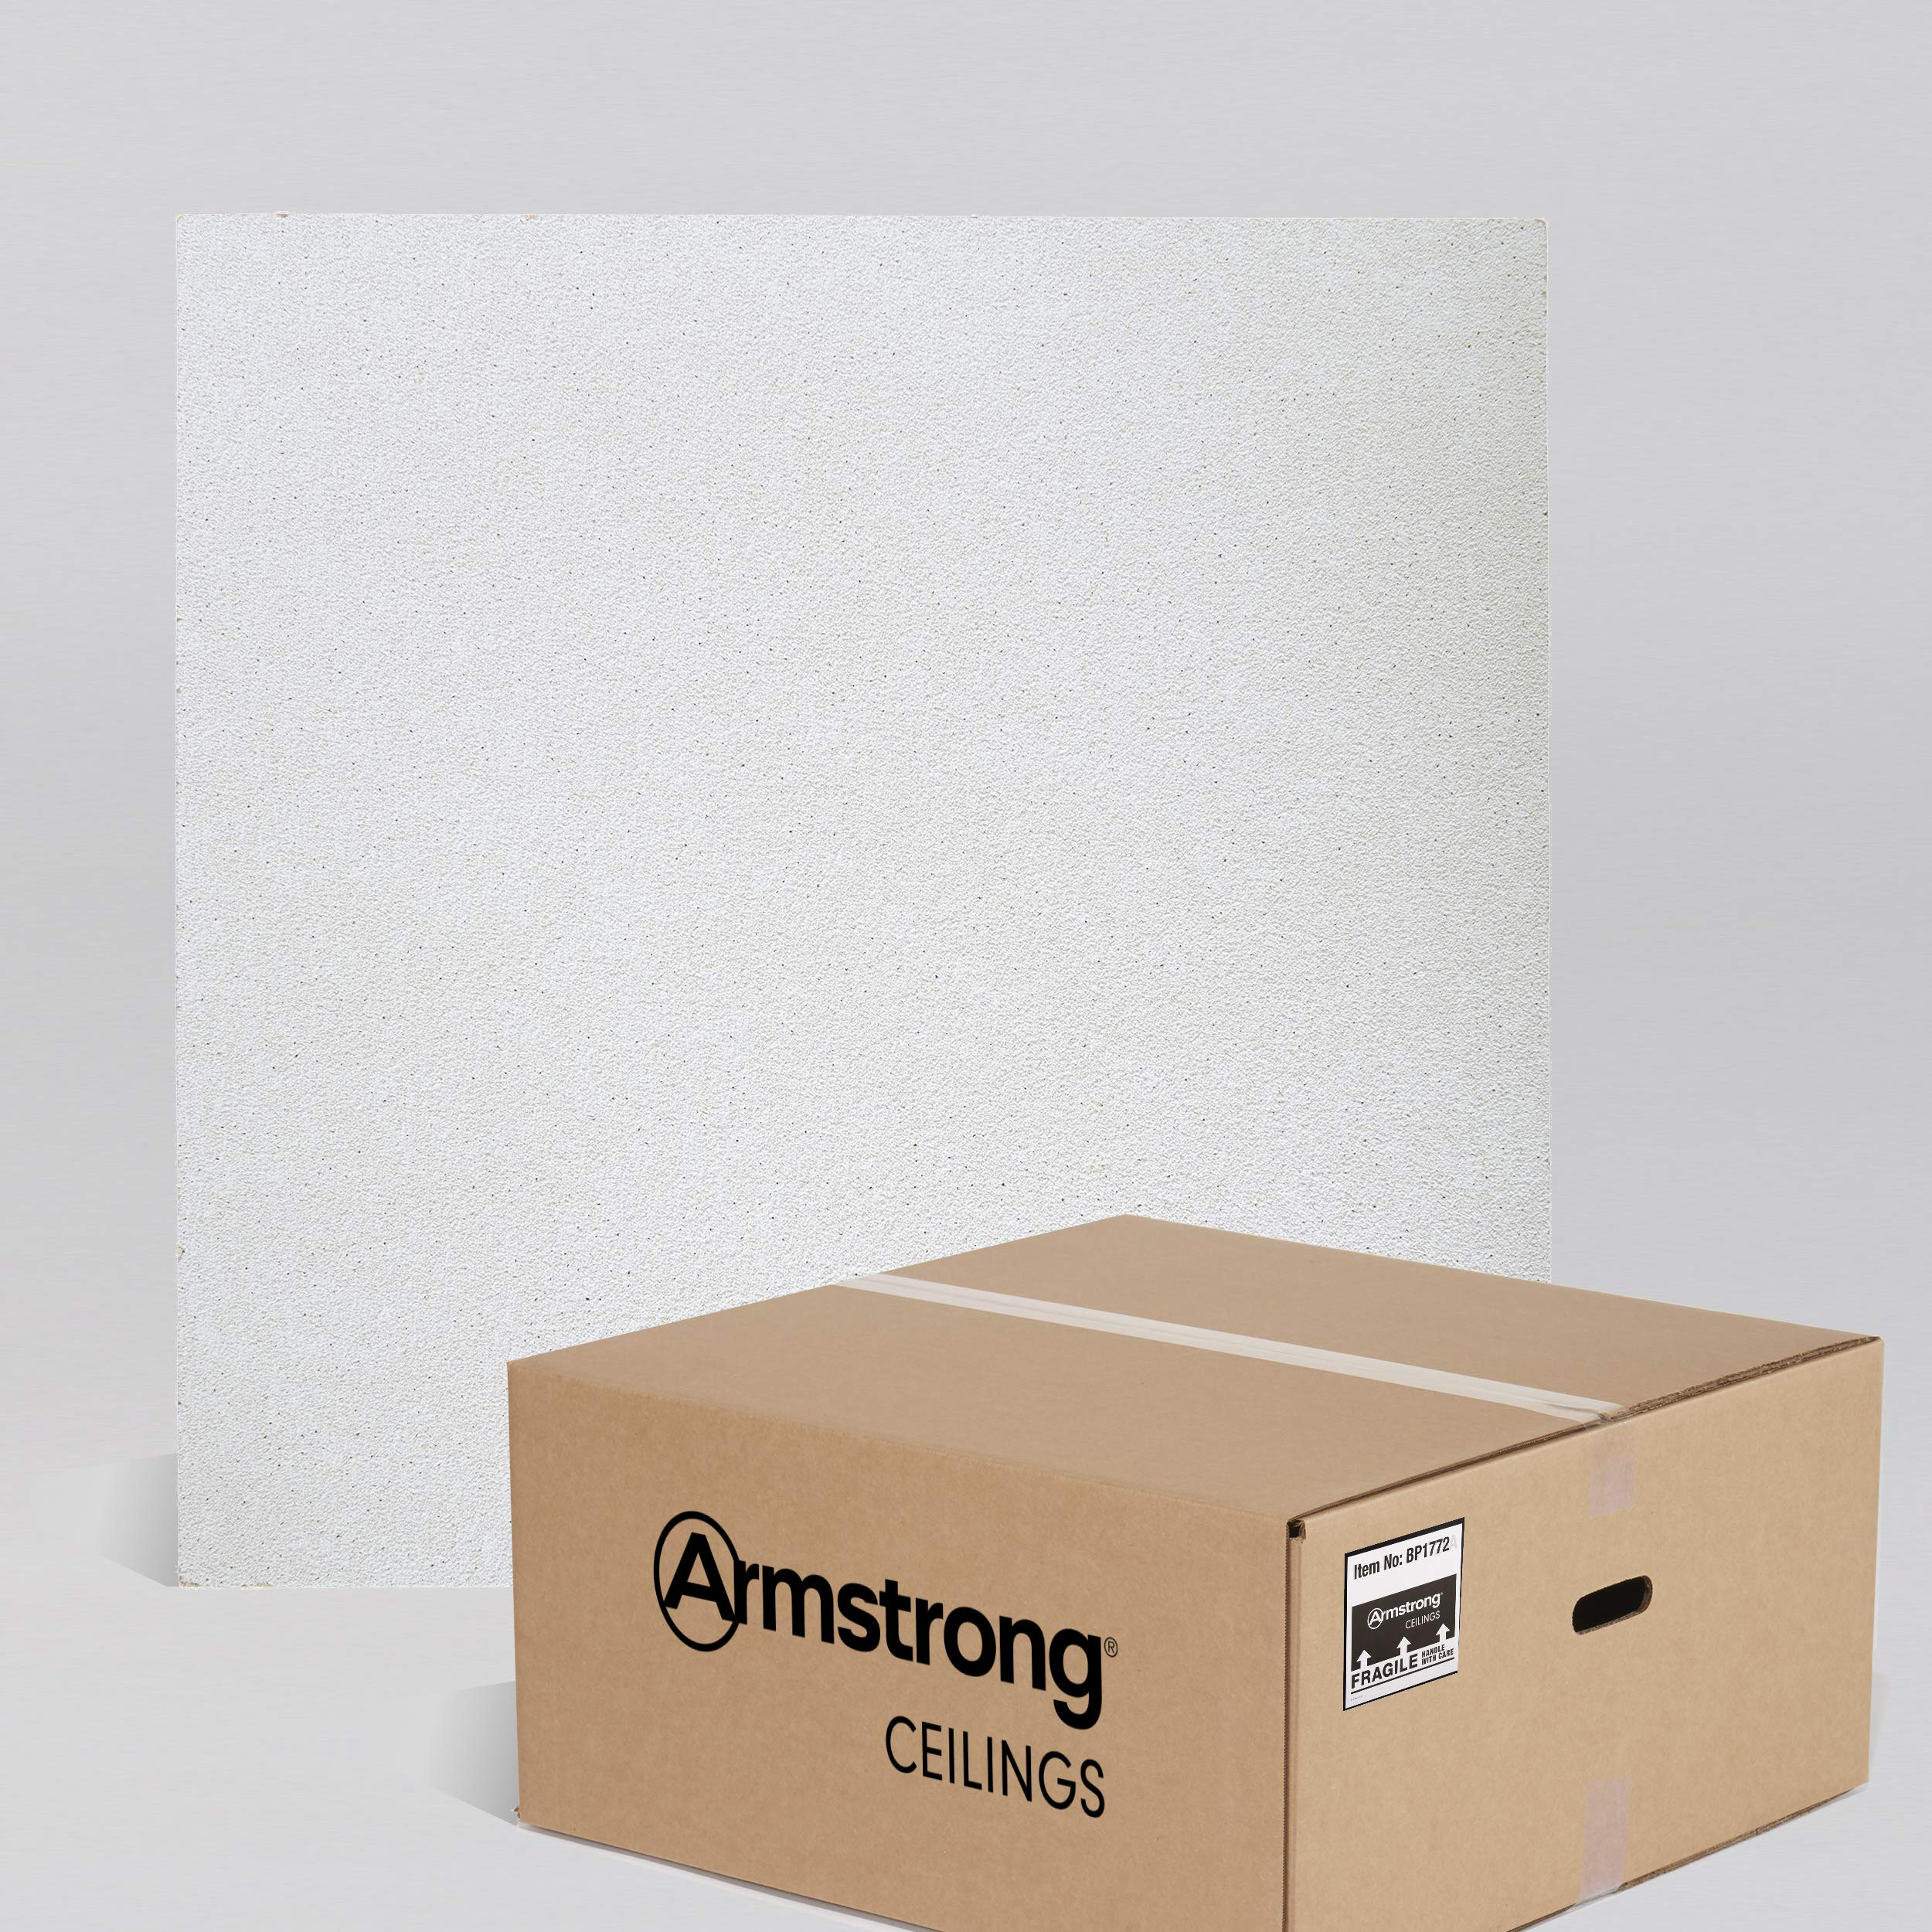 Armstrong Ceiling Tiles; 2x2 Ceiling Tiles - HUMIGUARD Plus Acoustic Ceilings for Suspended Ceiling Grid; Drop Ceiling Tiles Direct from the Manufacturer; DUNE Item 1772 - 16 pcs White Lay-in